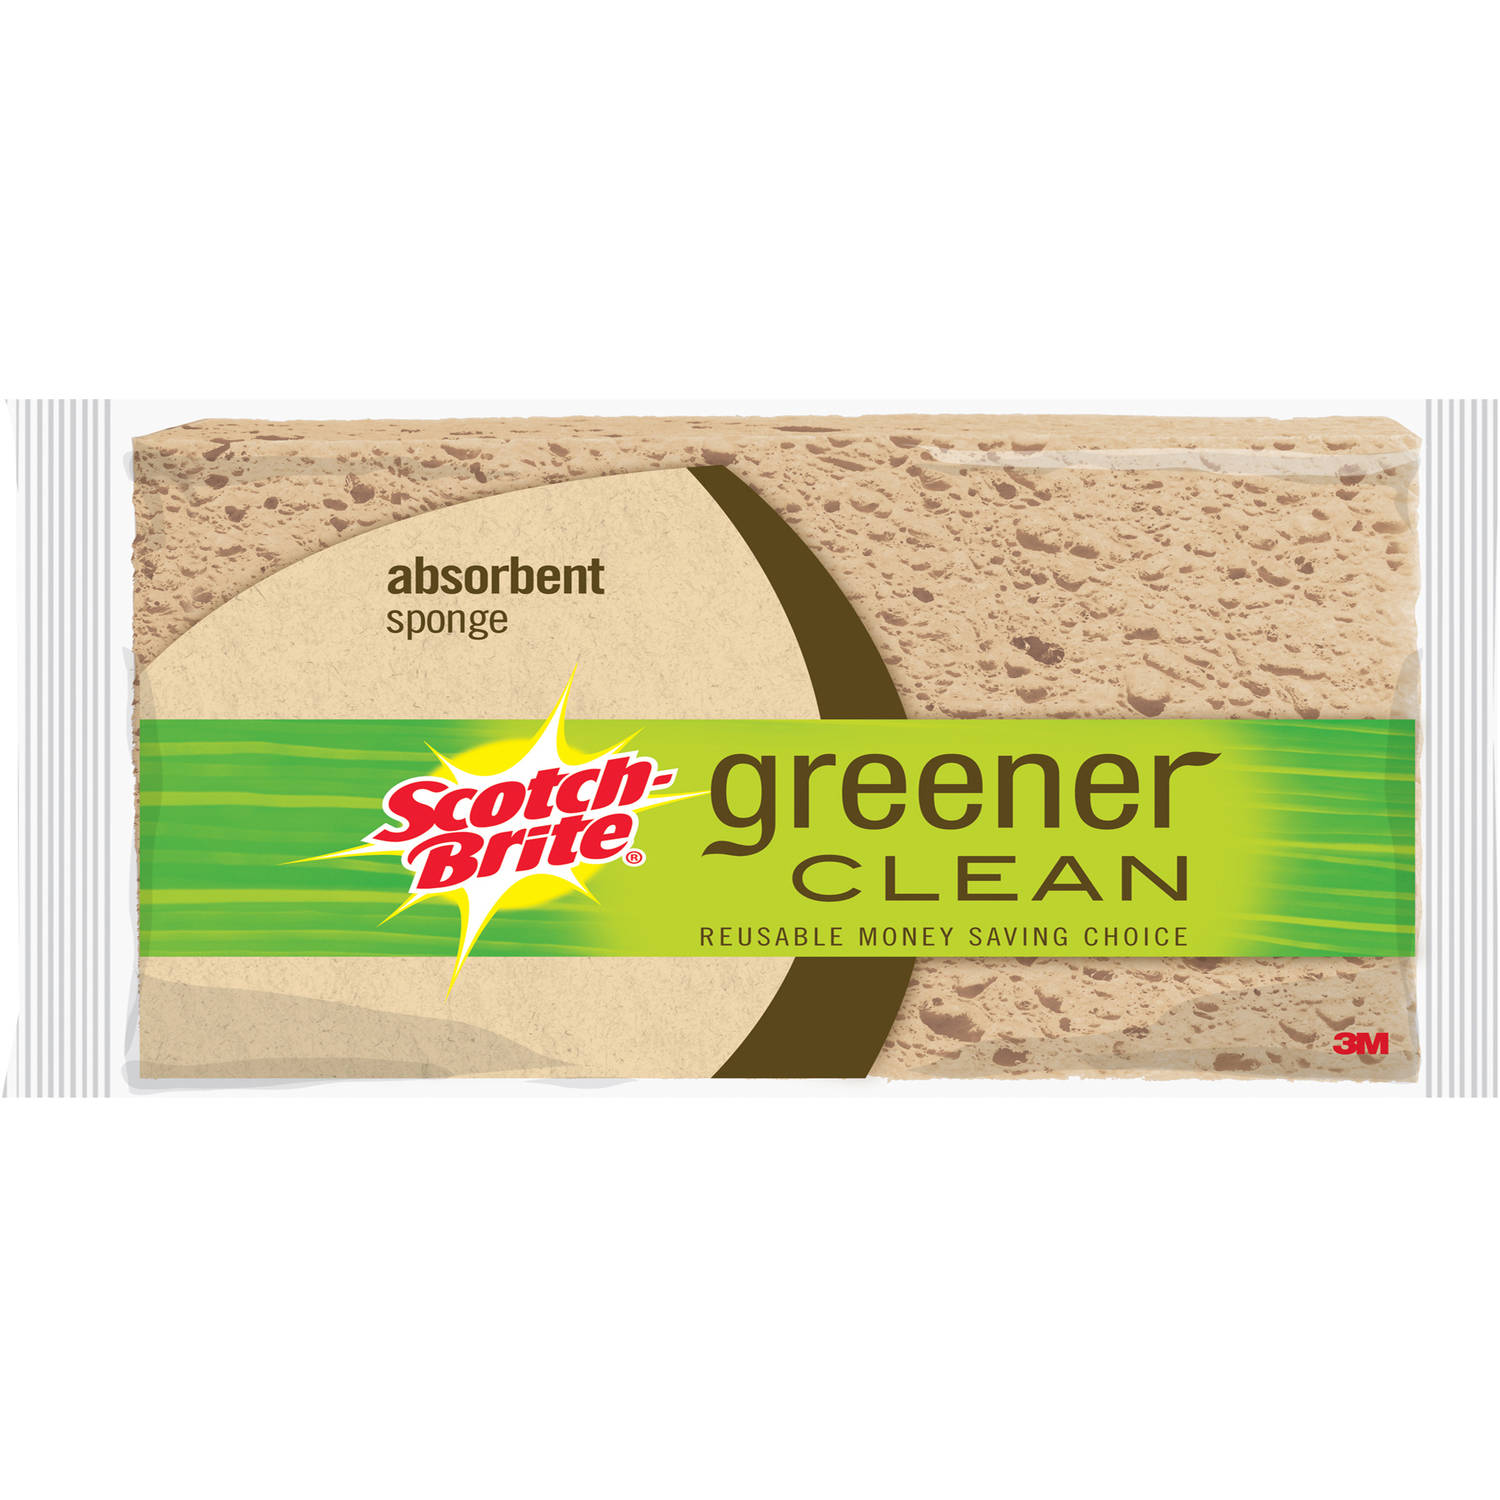 Scotch-Brite Greener Clean Absorbent Sponges, 6 count